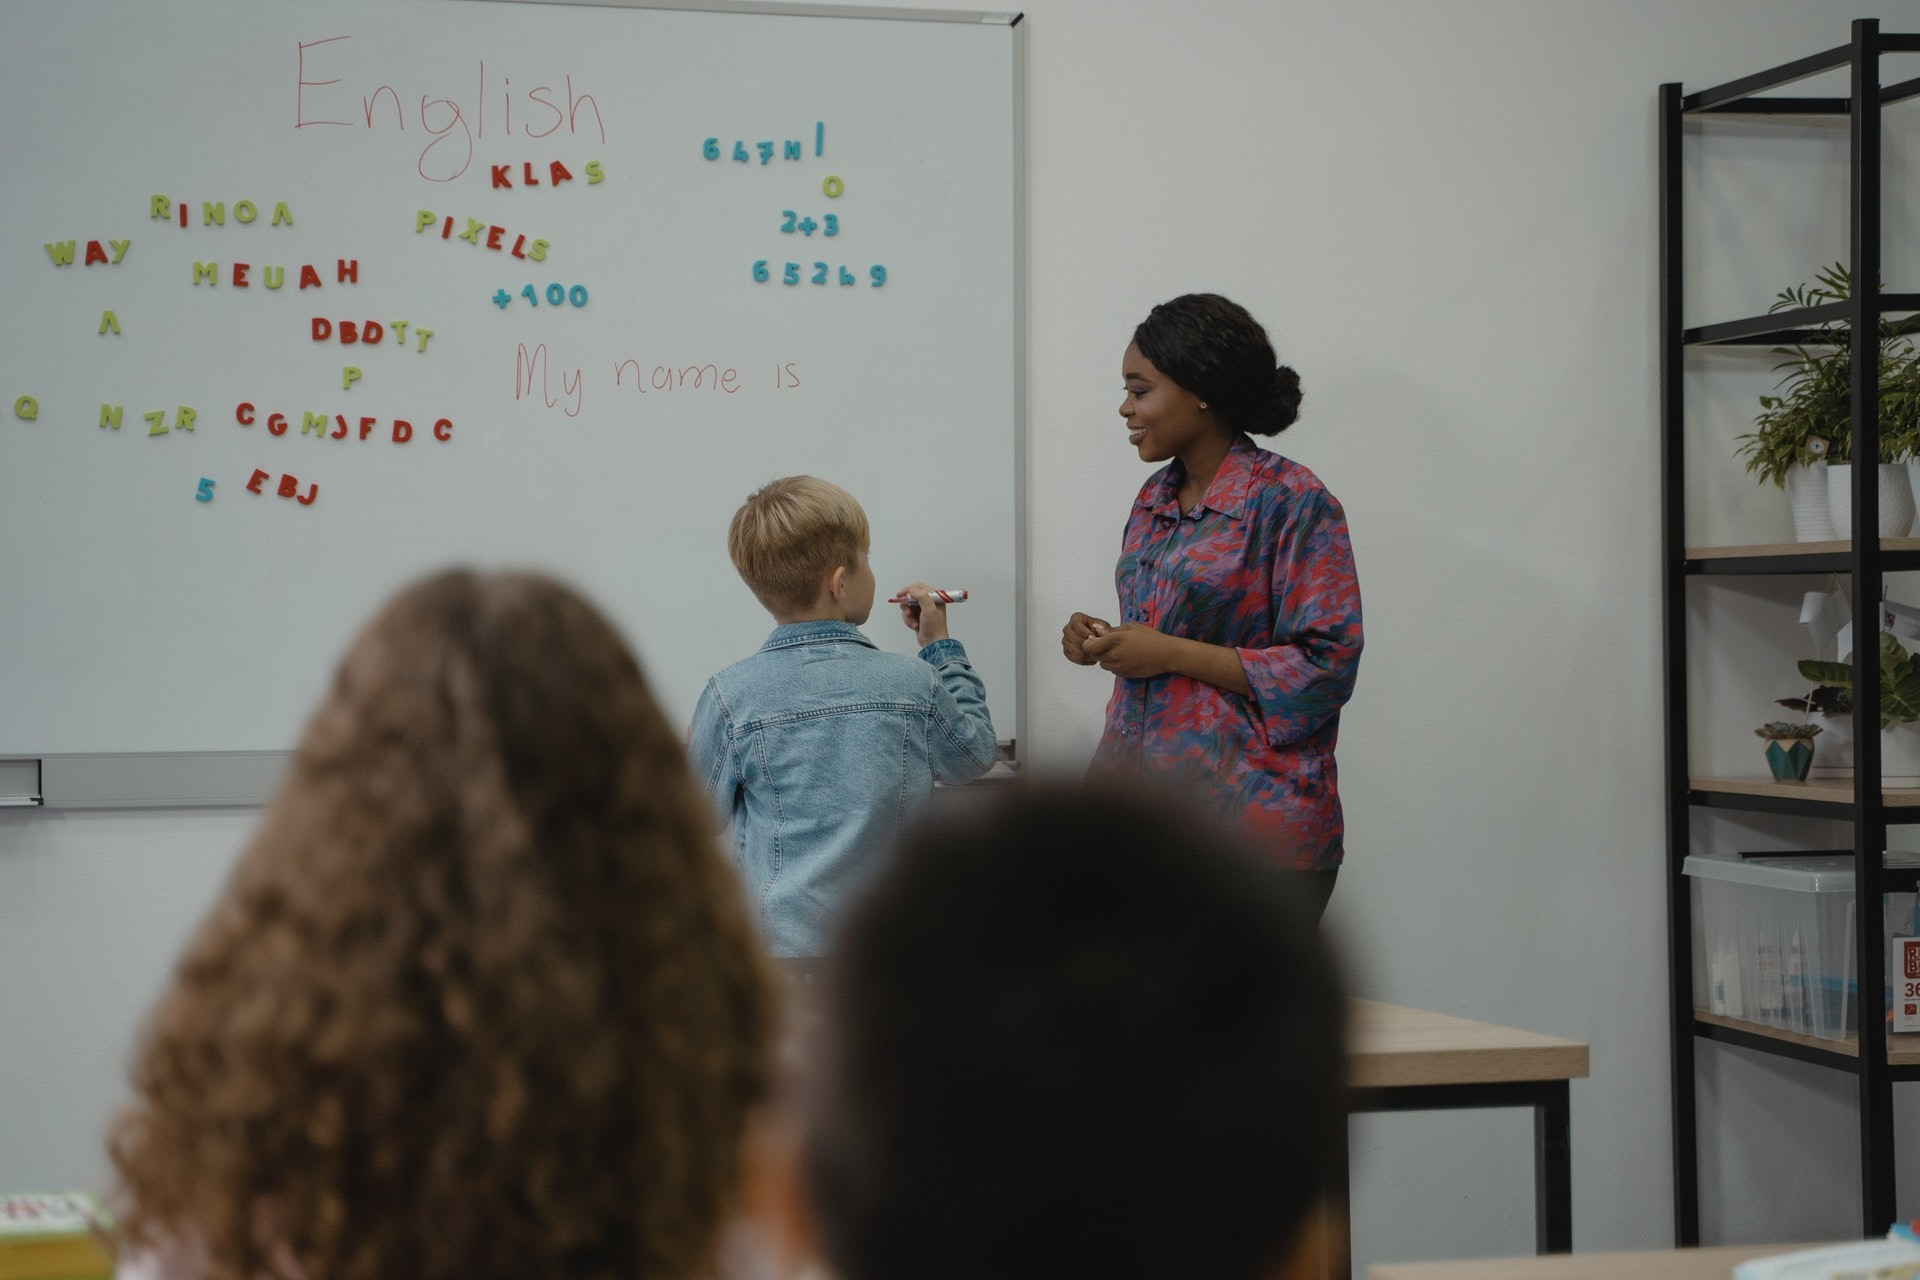 A teacher uses new teaching methods with a student at the whiteboard in english class.